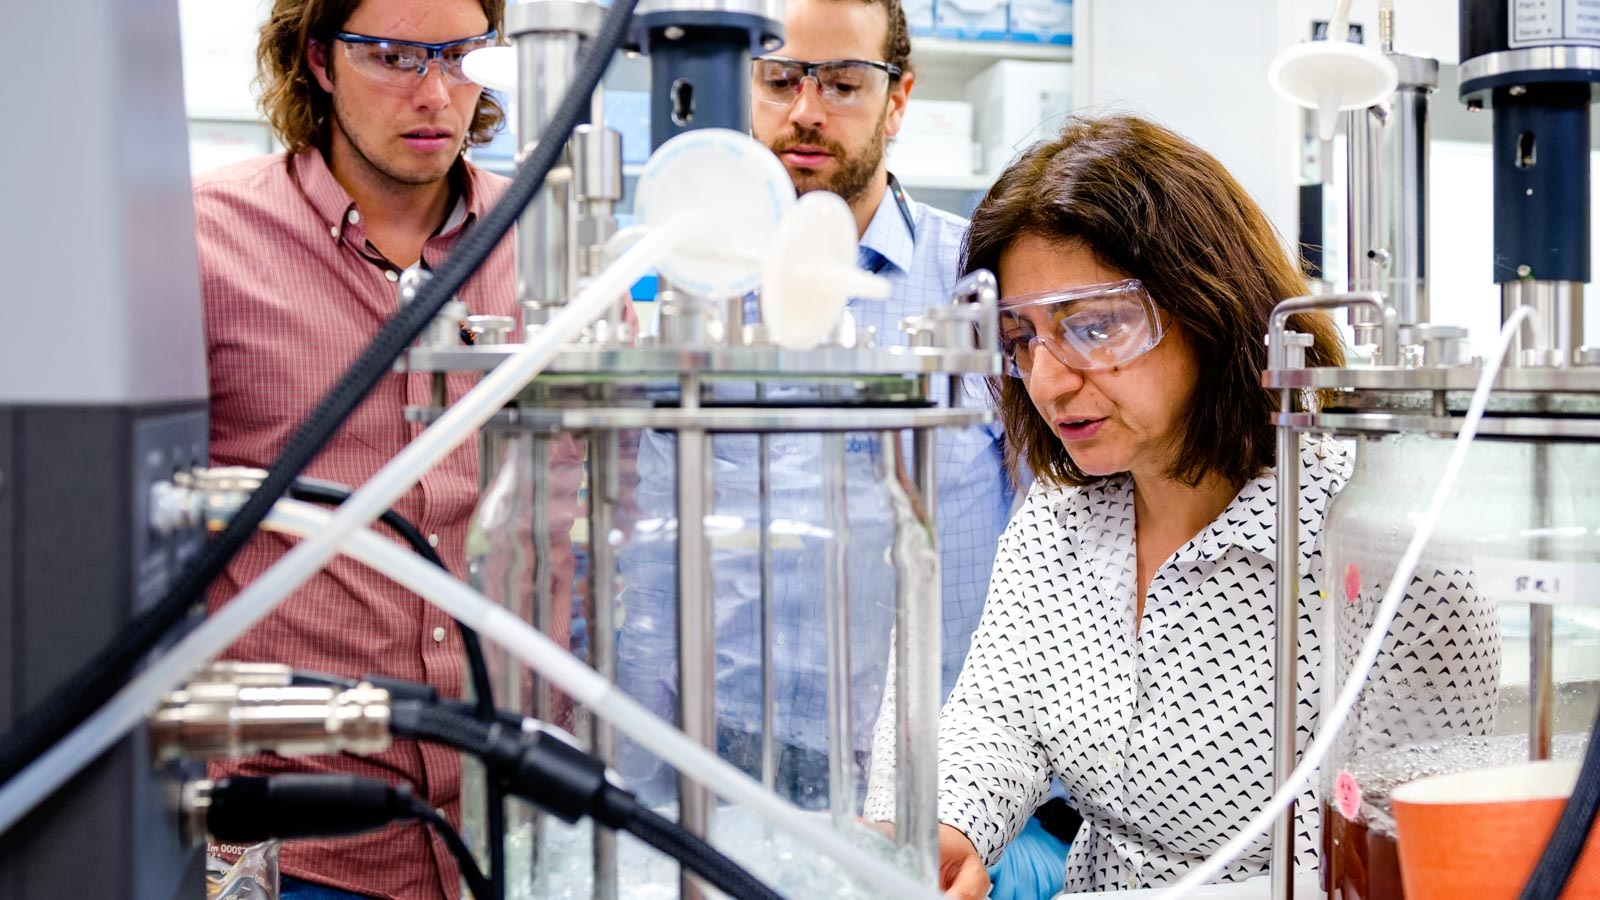 Meltem Urgun-Demirtas, right, a group leader at Argonne, along with the University of Michigan and Northwestern University will lead a bioenergy industry consortium with a workforce development component to develop new technologies. (Image by Argonne National Laboratory.)